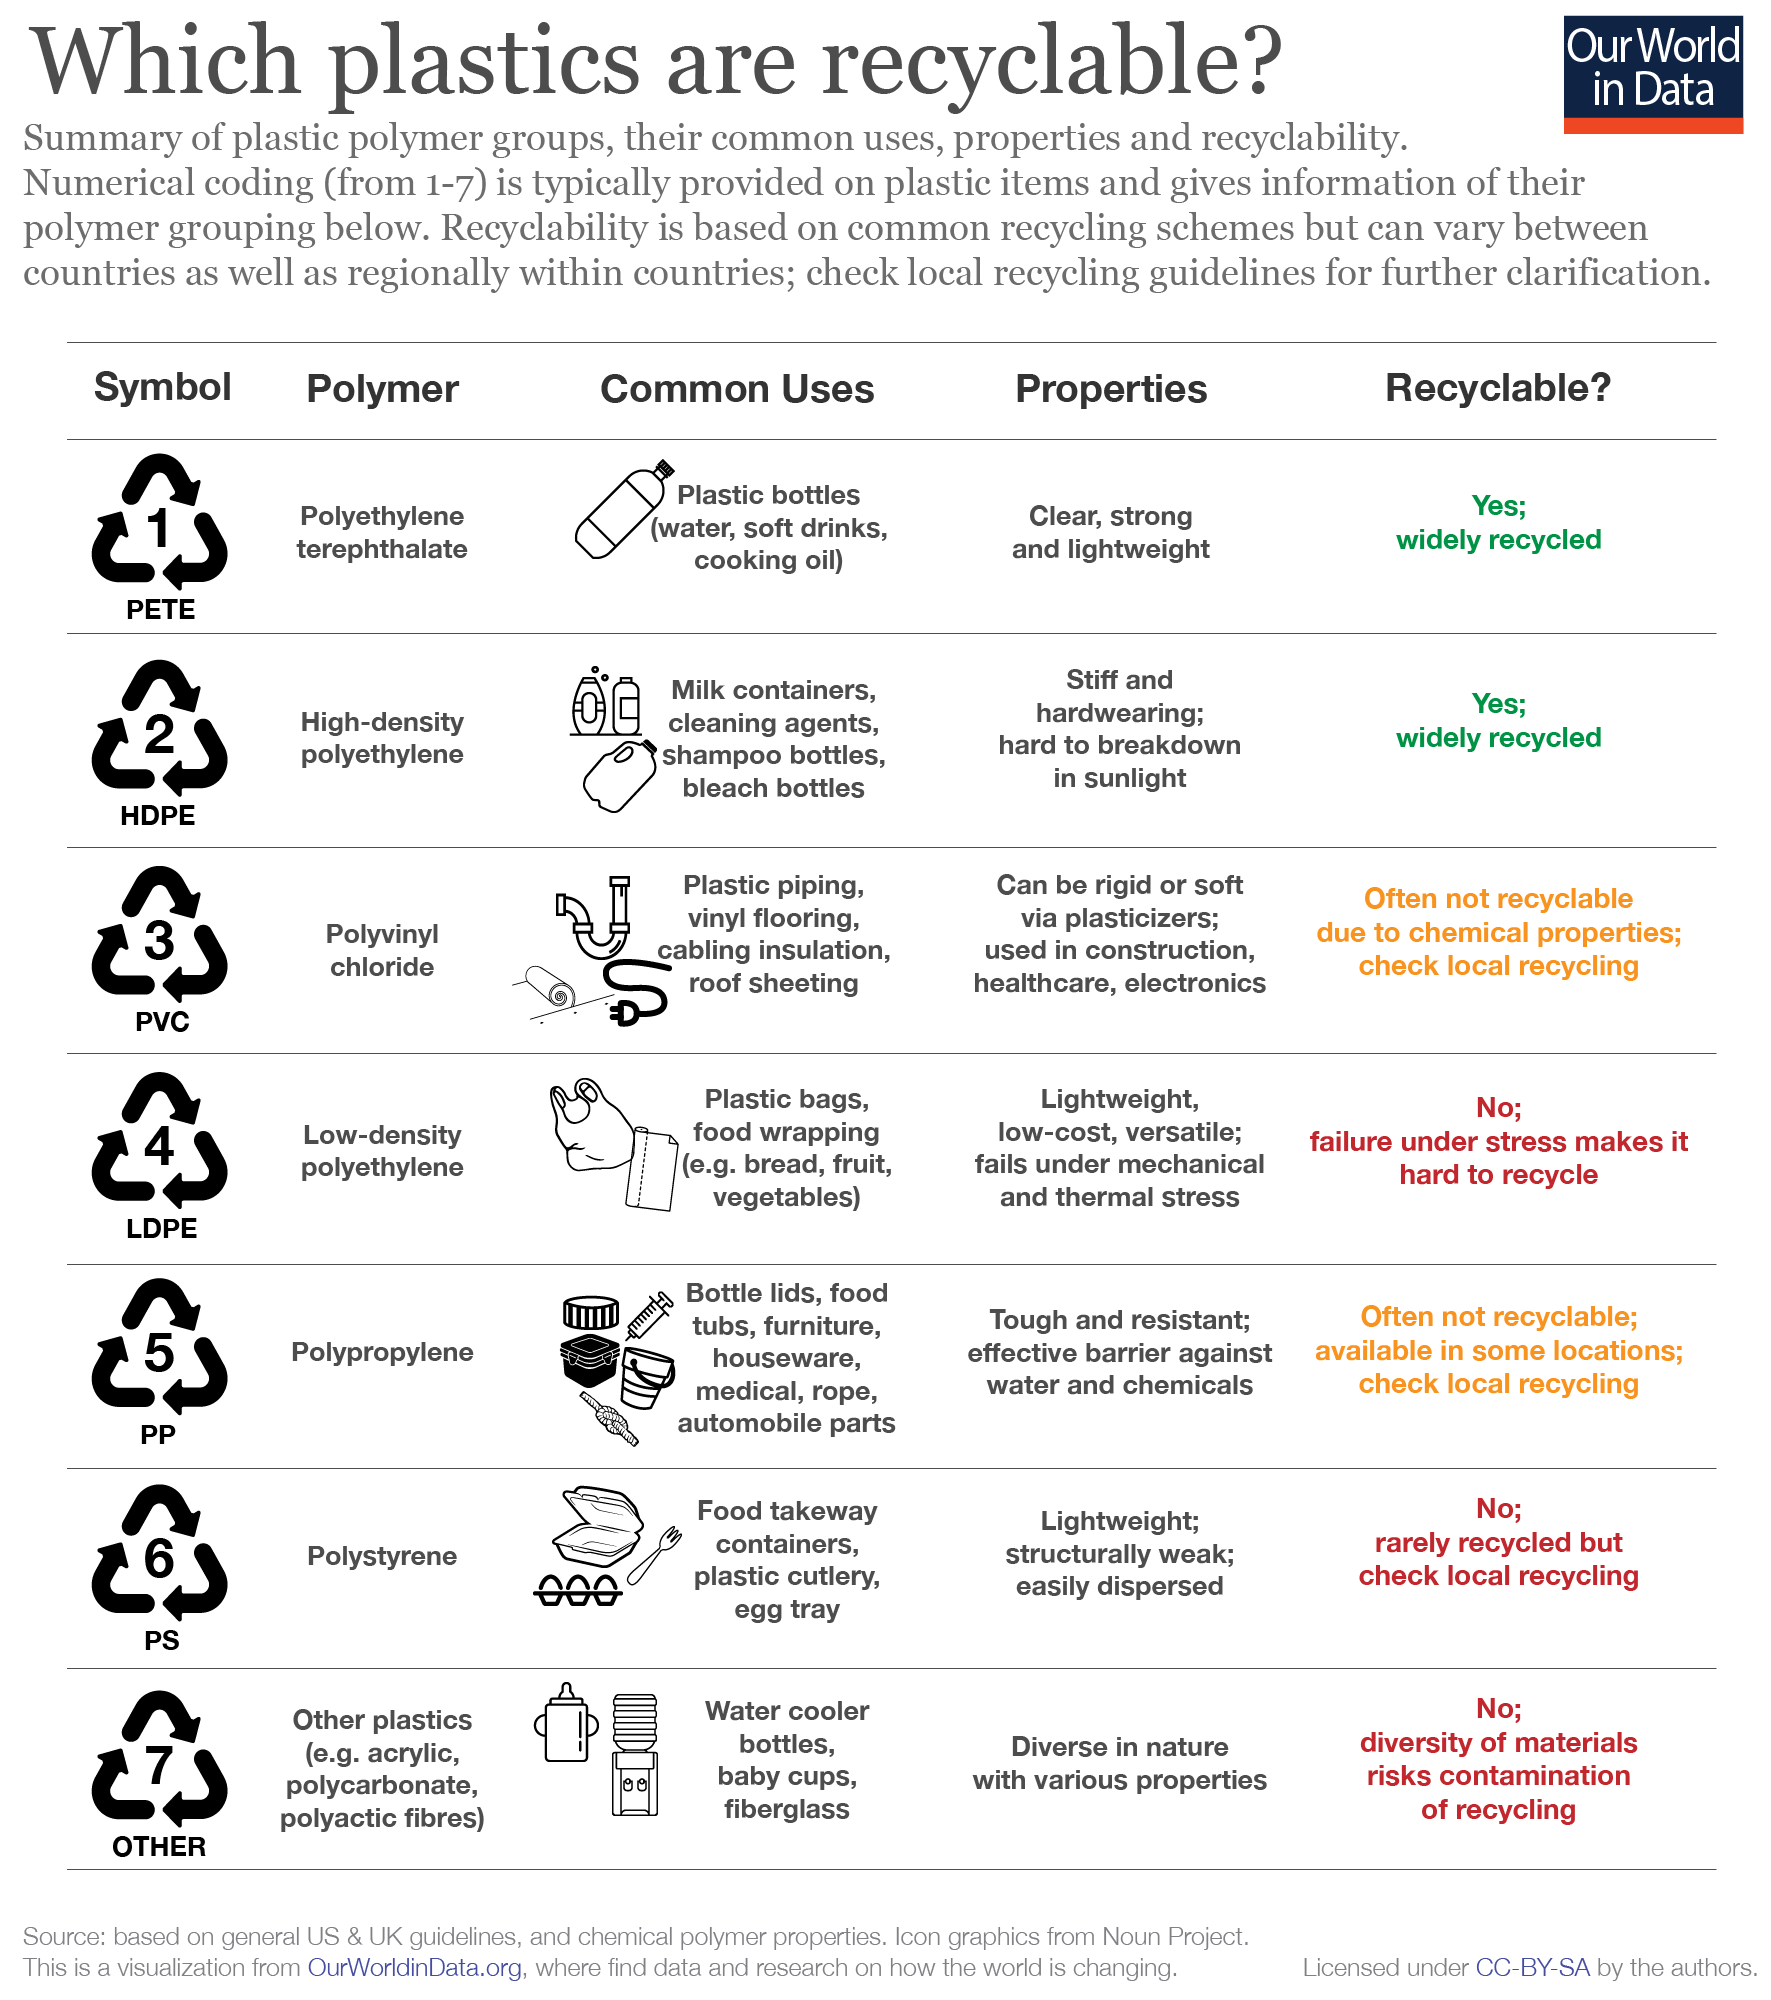 FAQs on Plastics - Our World in Data